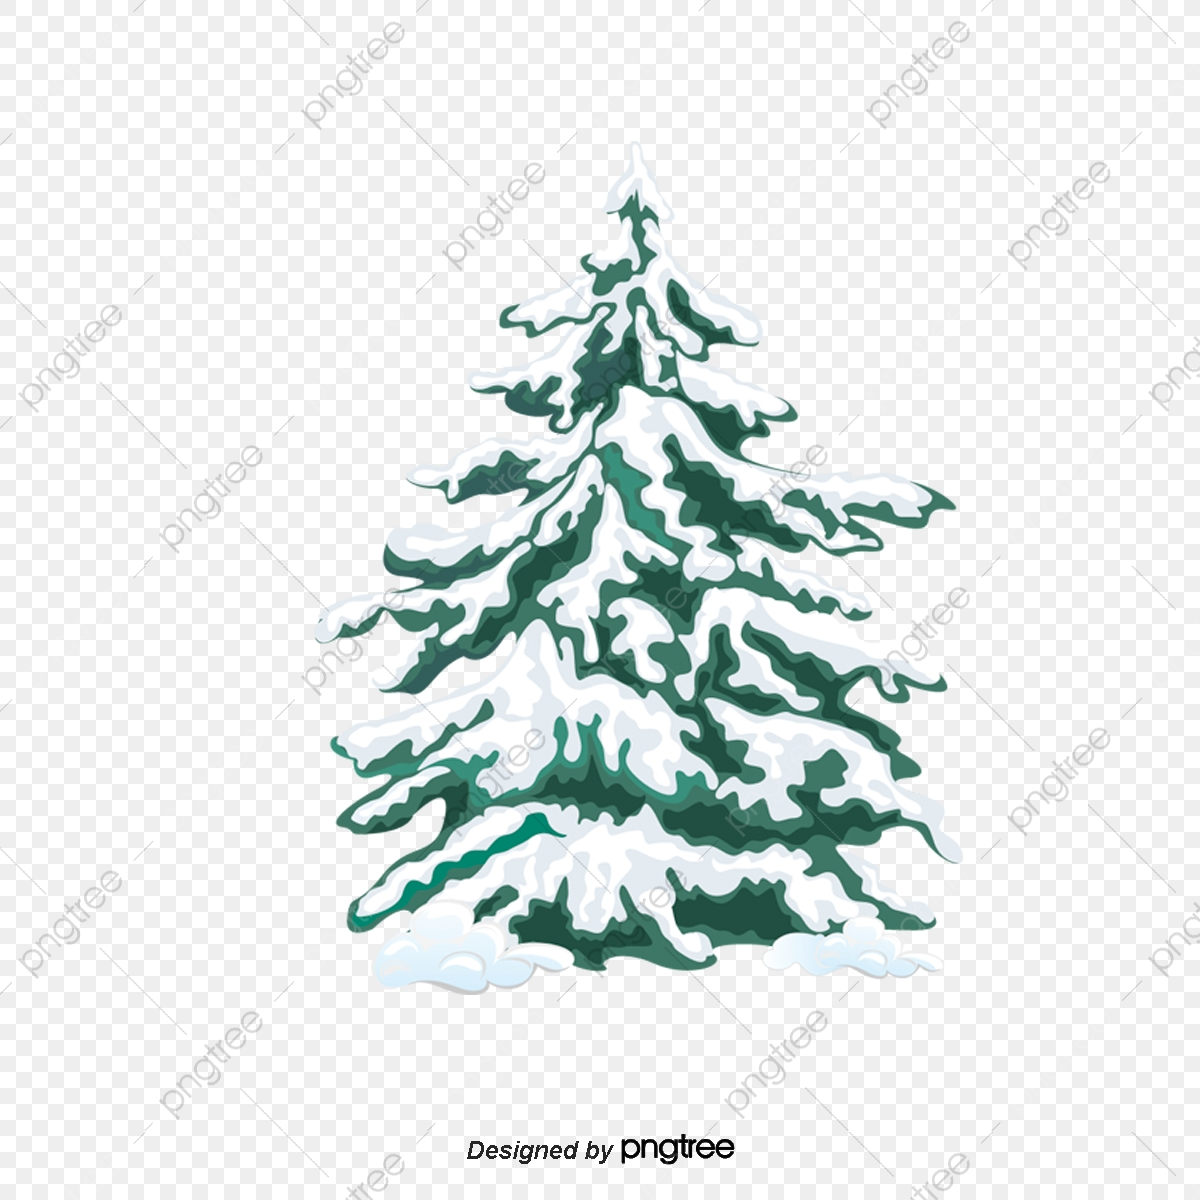 White Christmas Tree Png Transparent.Winter Trees Cedar Trees Element Winter Christmas Tree